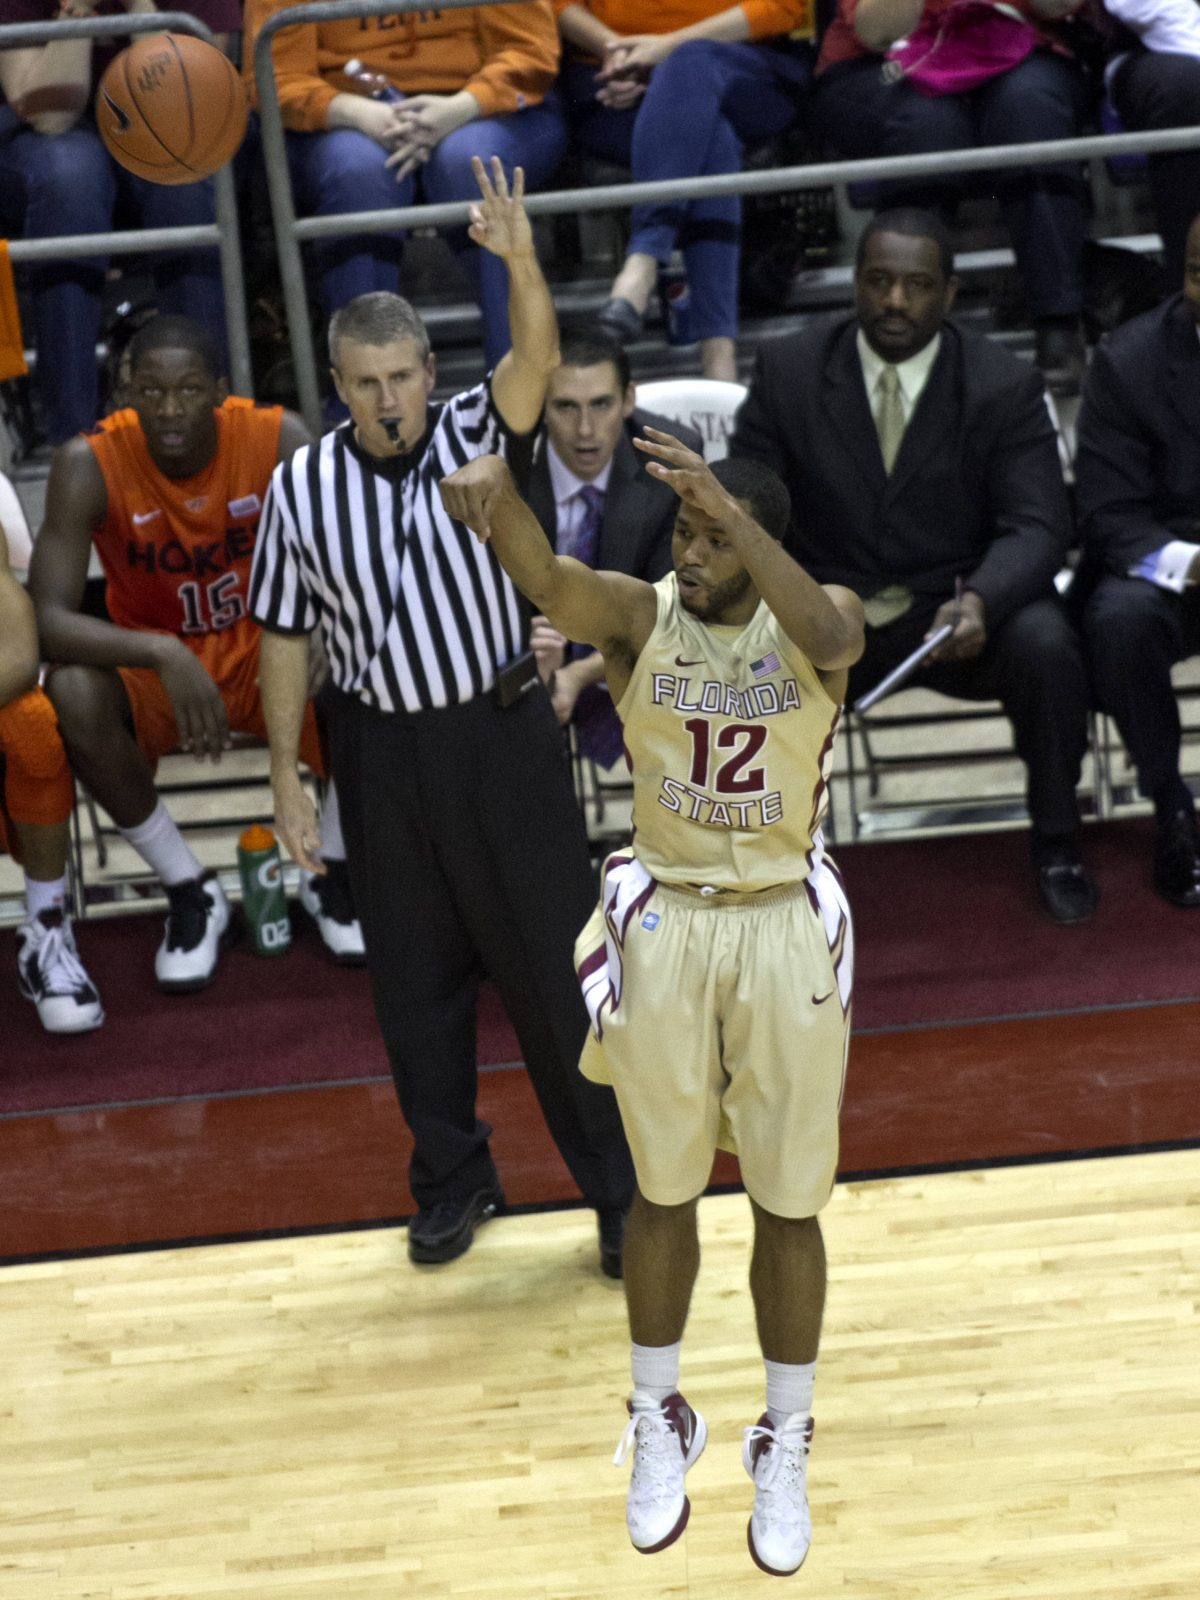 Jeff Peterson (12), FSU vs VT,  02/16/2012